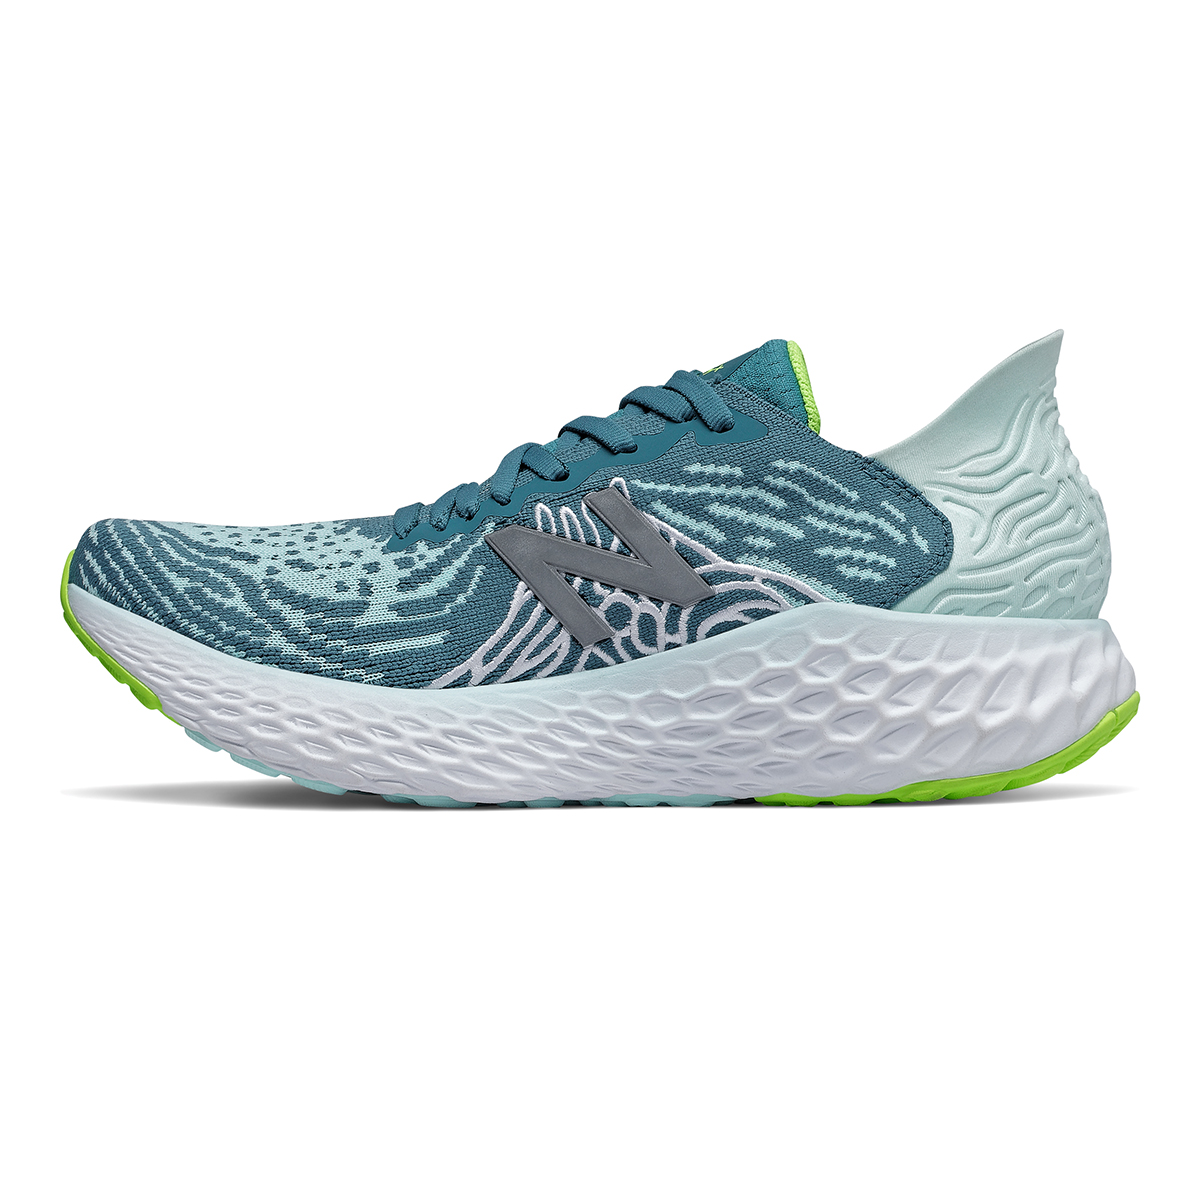 Women's New Balance Fresh Foam 1080v10 Running Shoe - Color: Jet Stream/Glacier - Size: 5 - Width: Regular, Jet Stream/Glacier, large, image 2